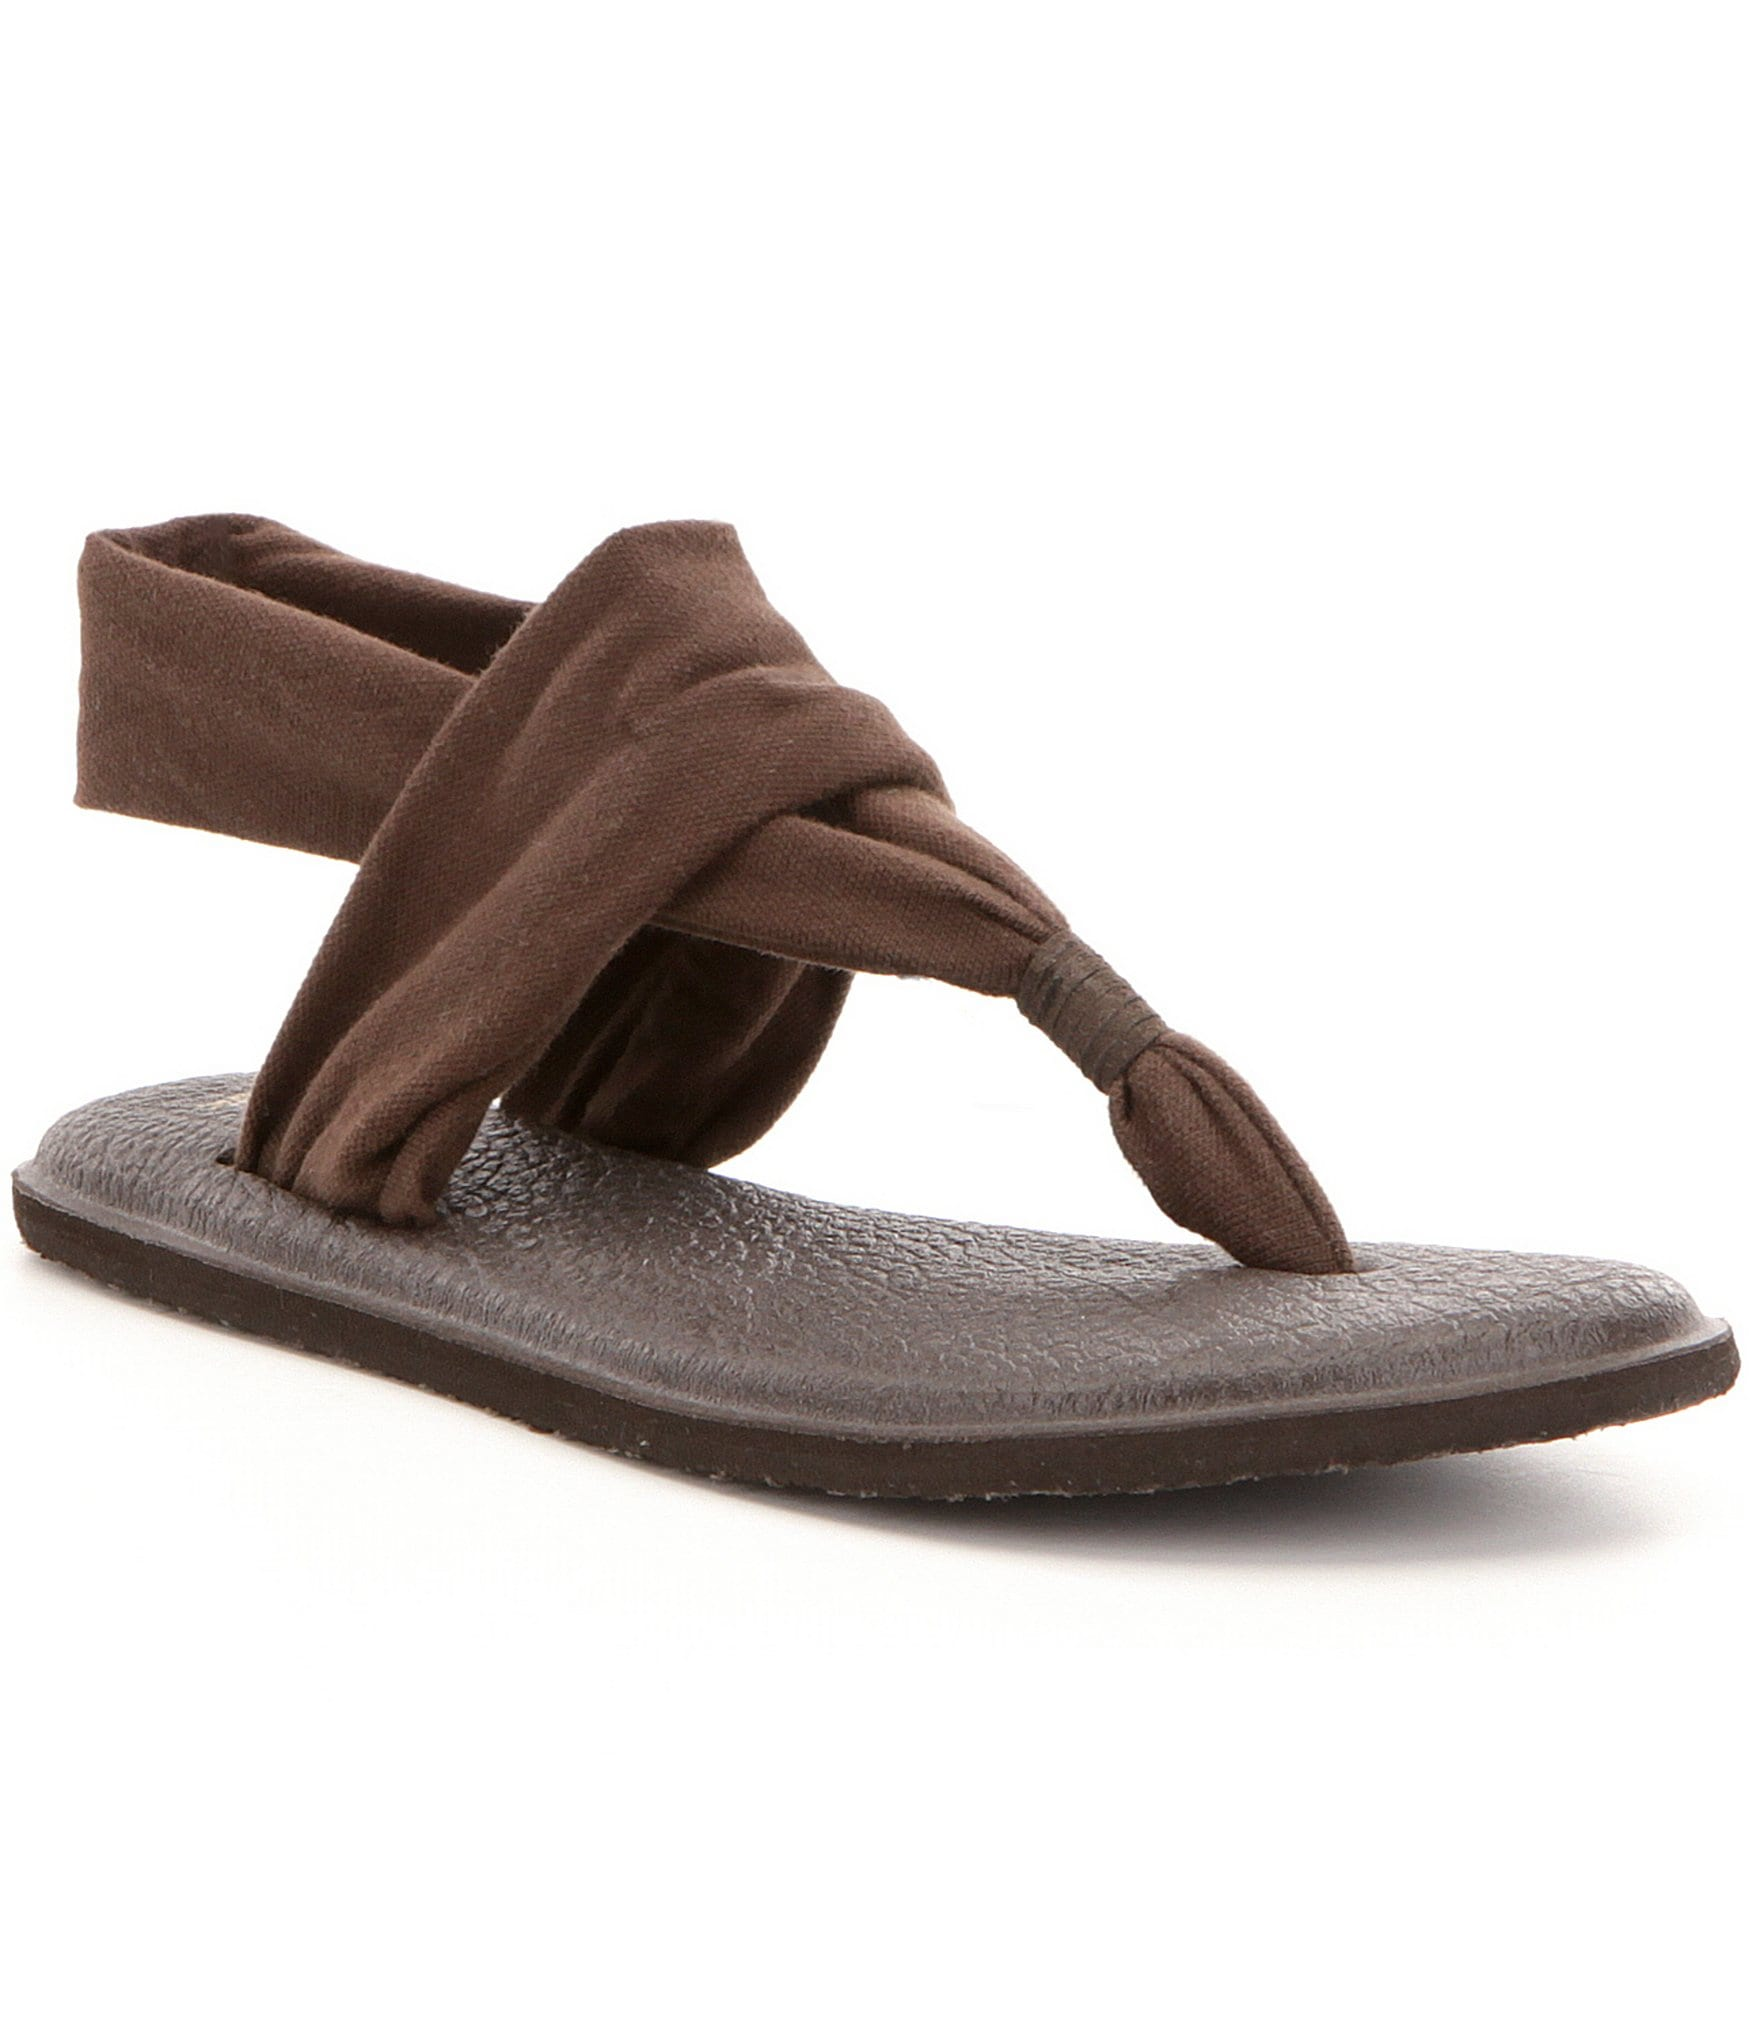 Sanuk Yoga Shoes Amazon: Sanuk Yoga Sling Sandals